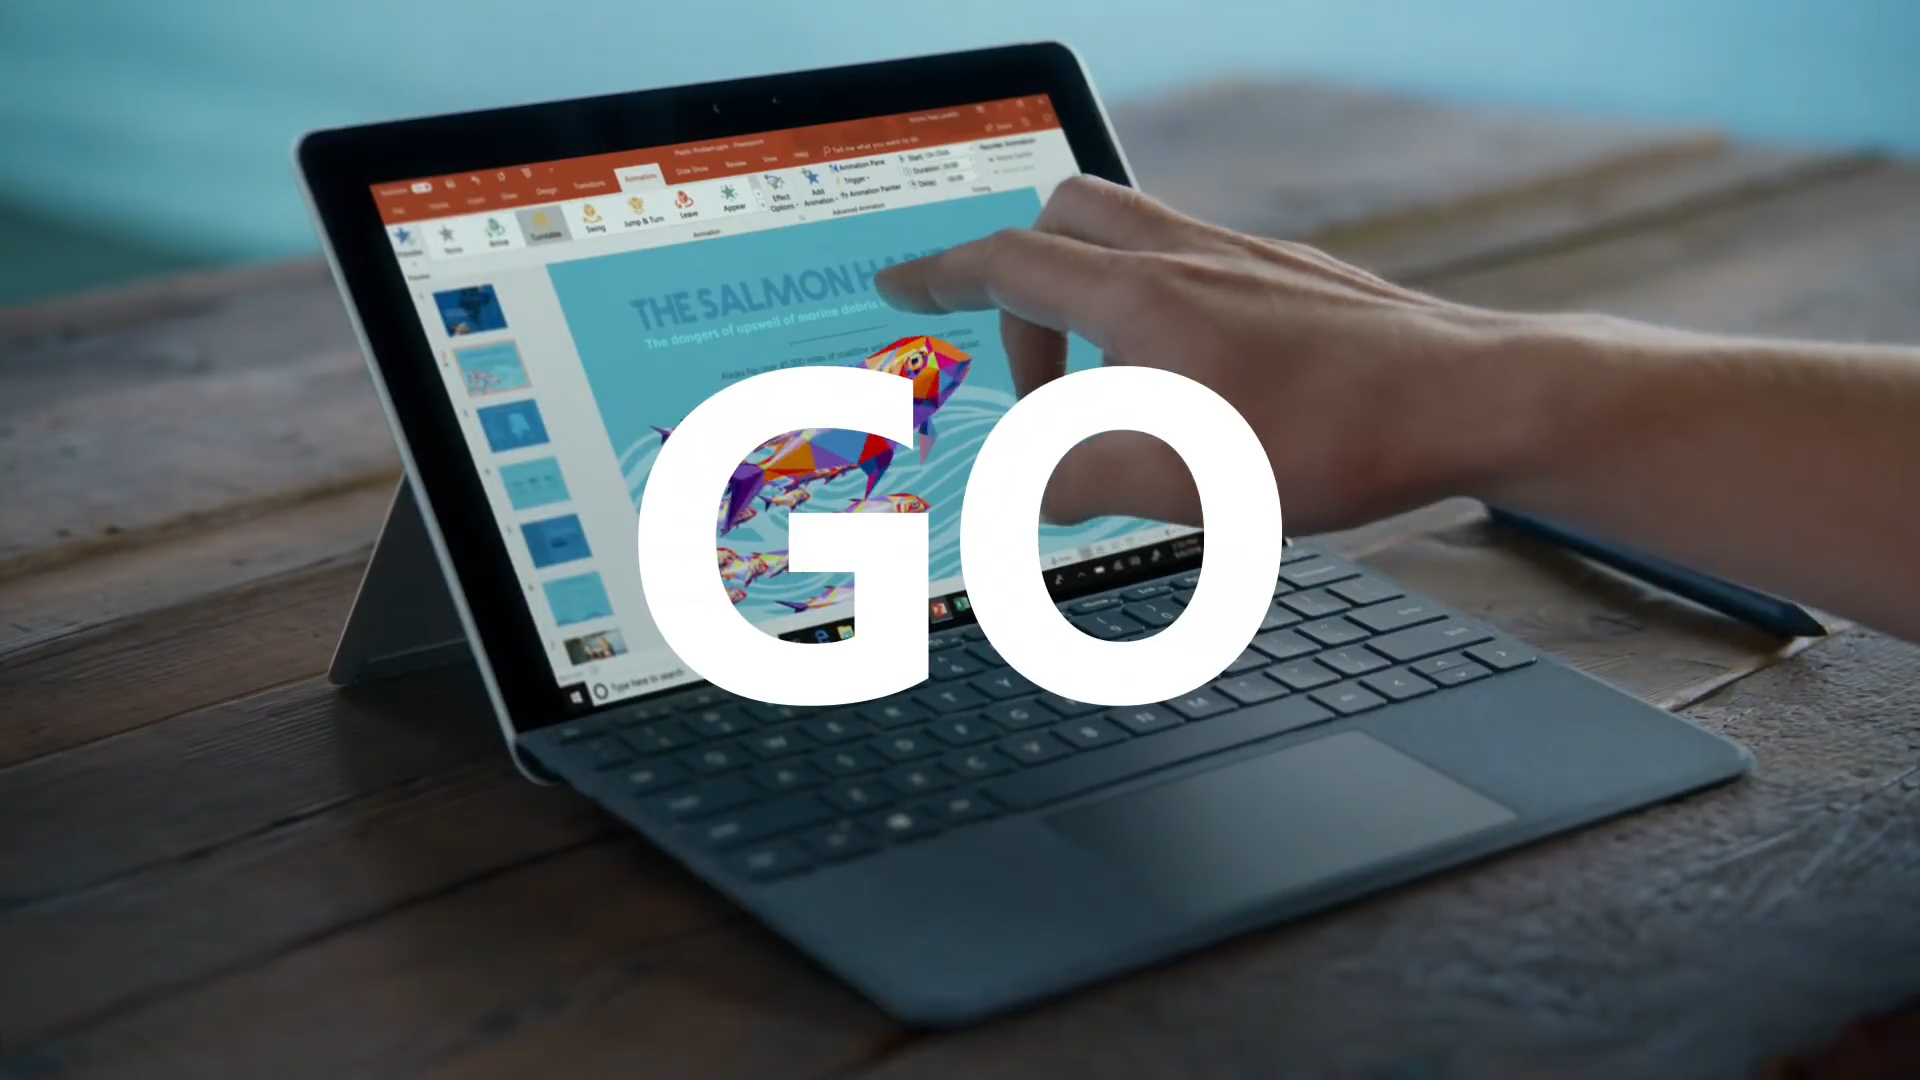 The new Microsoft Surface Go and the Salmon Sisters